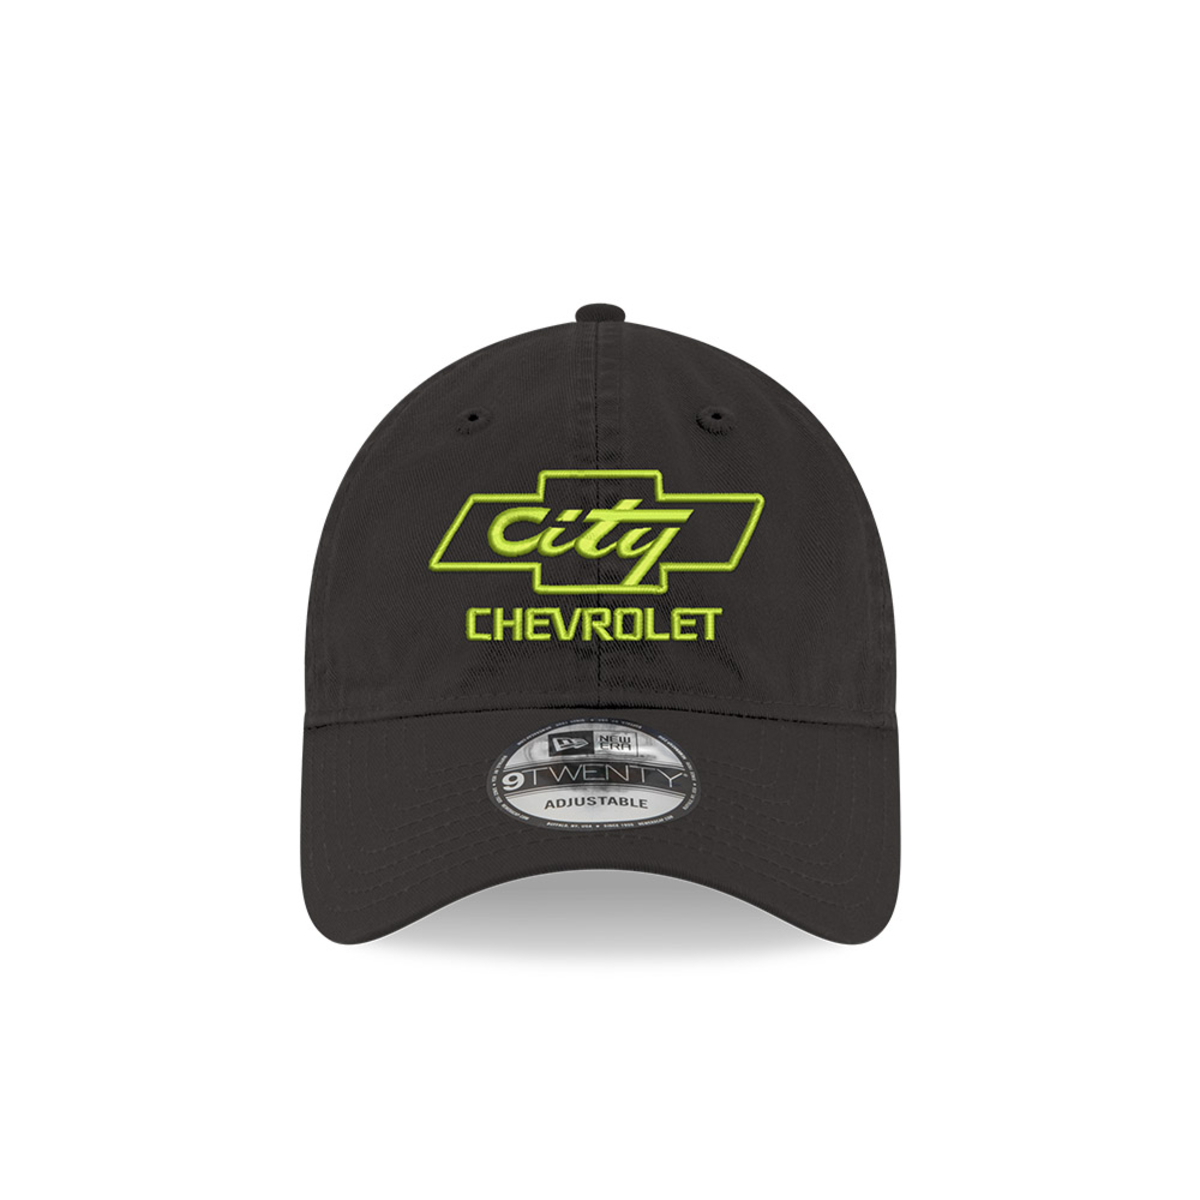 Hms City Chevrolet Black New Era Hat Shop The Hendrick Motorsports Official Store